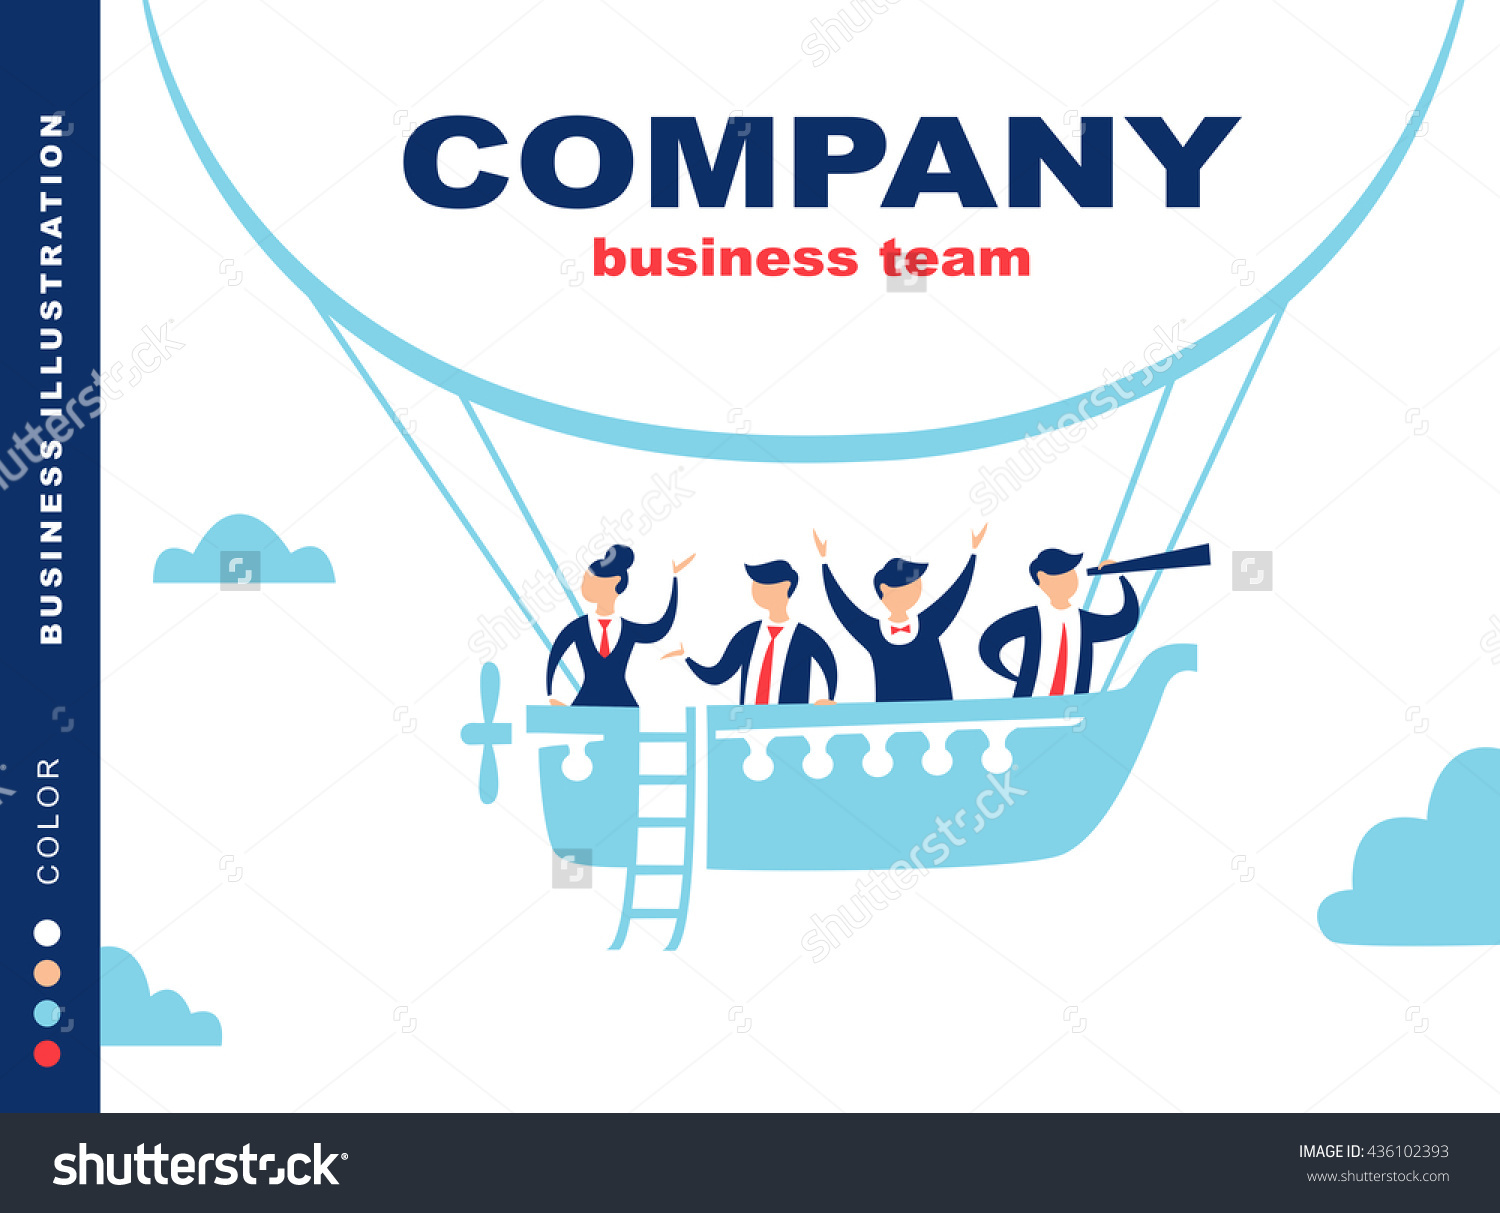 Team Of People Sailing On Ship In The Sky. Company Moving Forward.